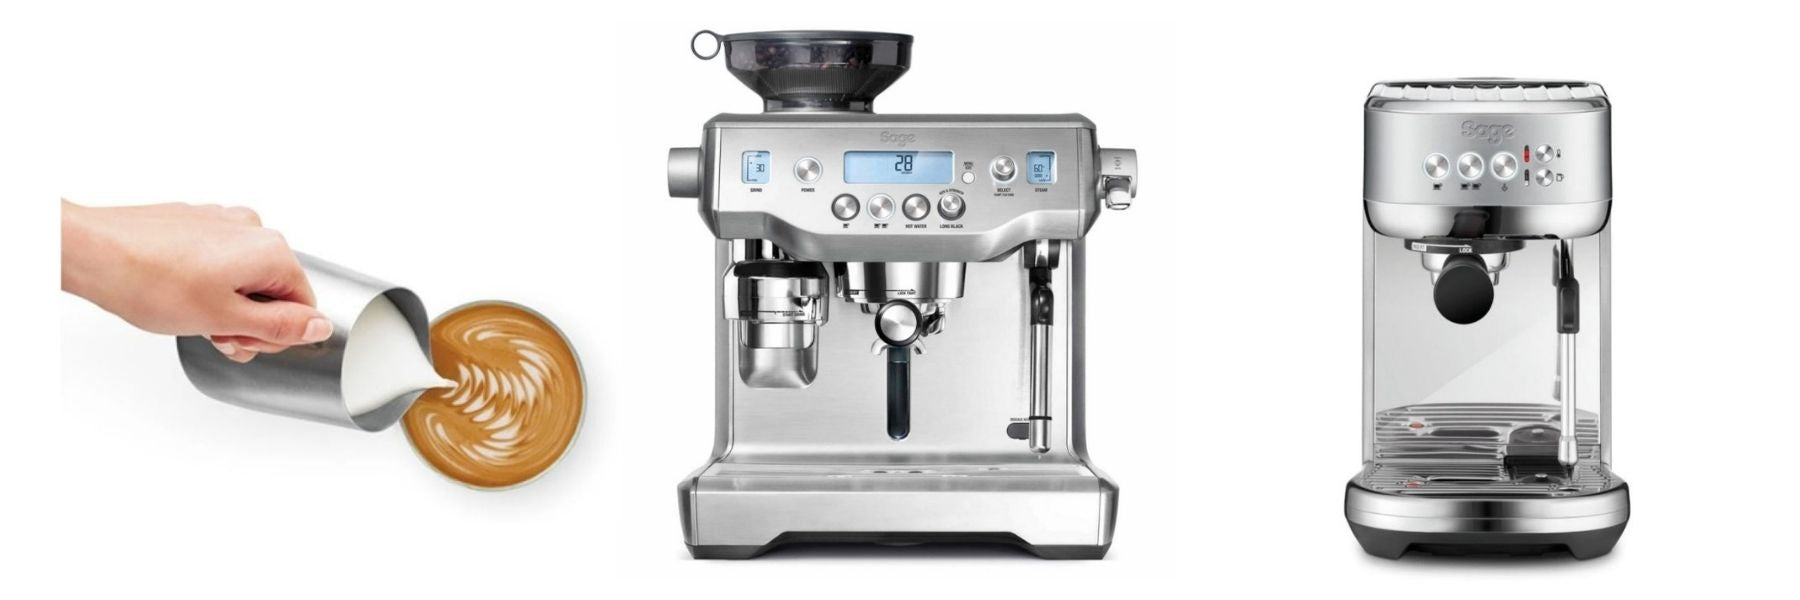 Espresso at home! Discover our new machines by Sage